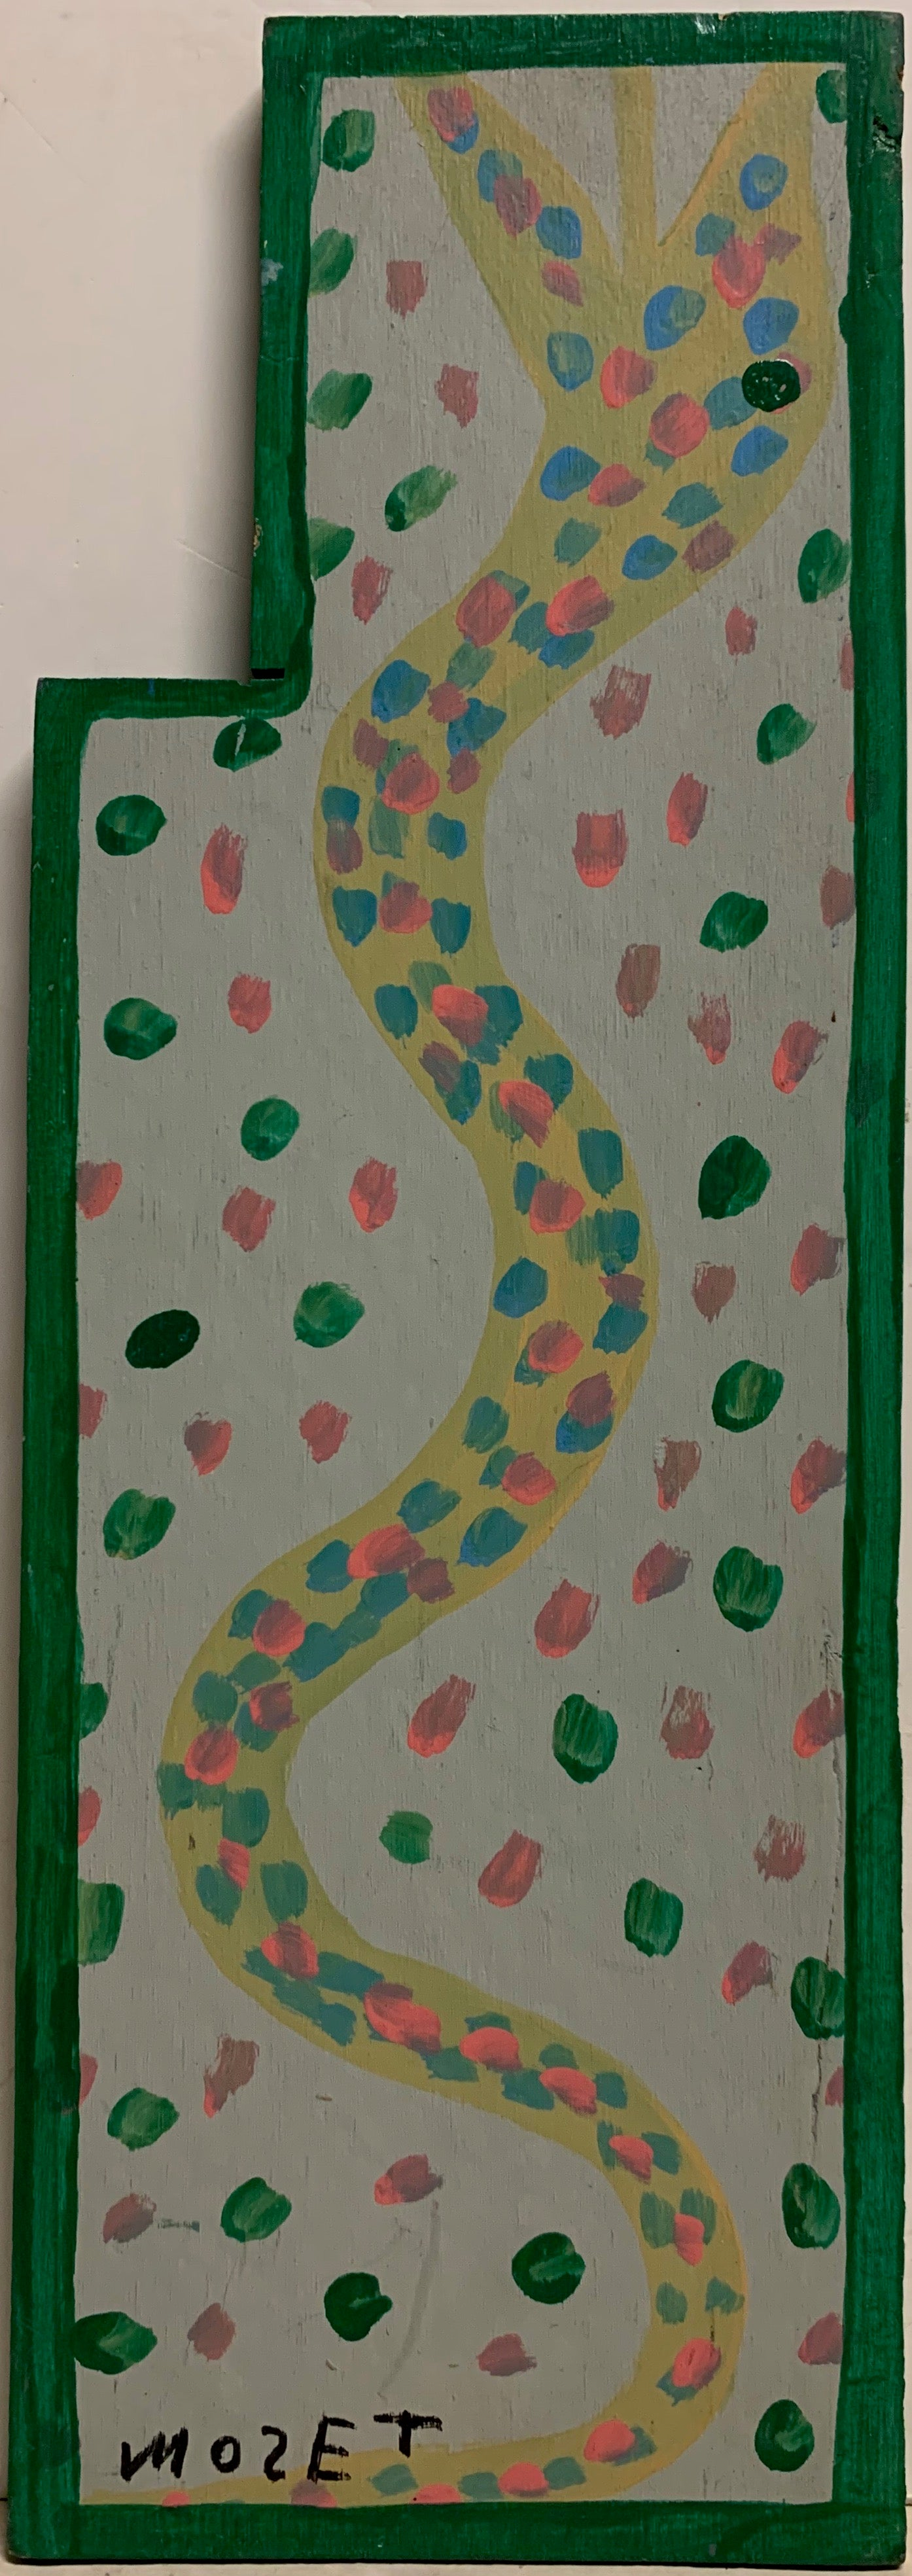 Polka Dotted Snake Mose Tolliver Painting